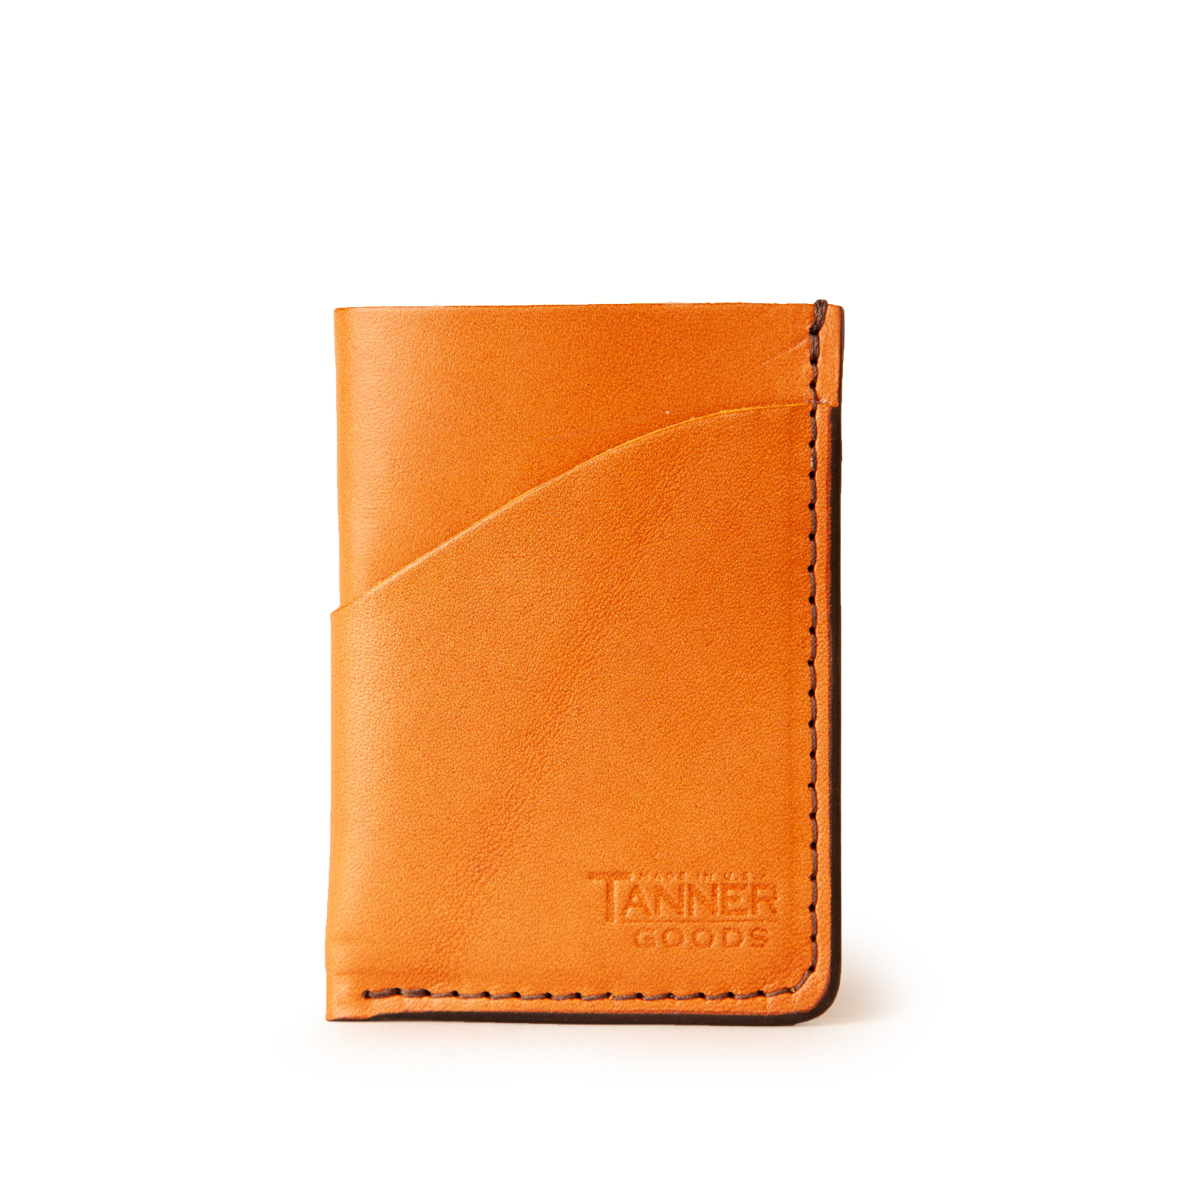 405372eca09d 9 Best Minimalist Wallets for Men